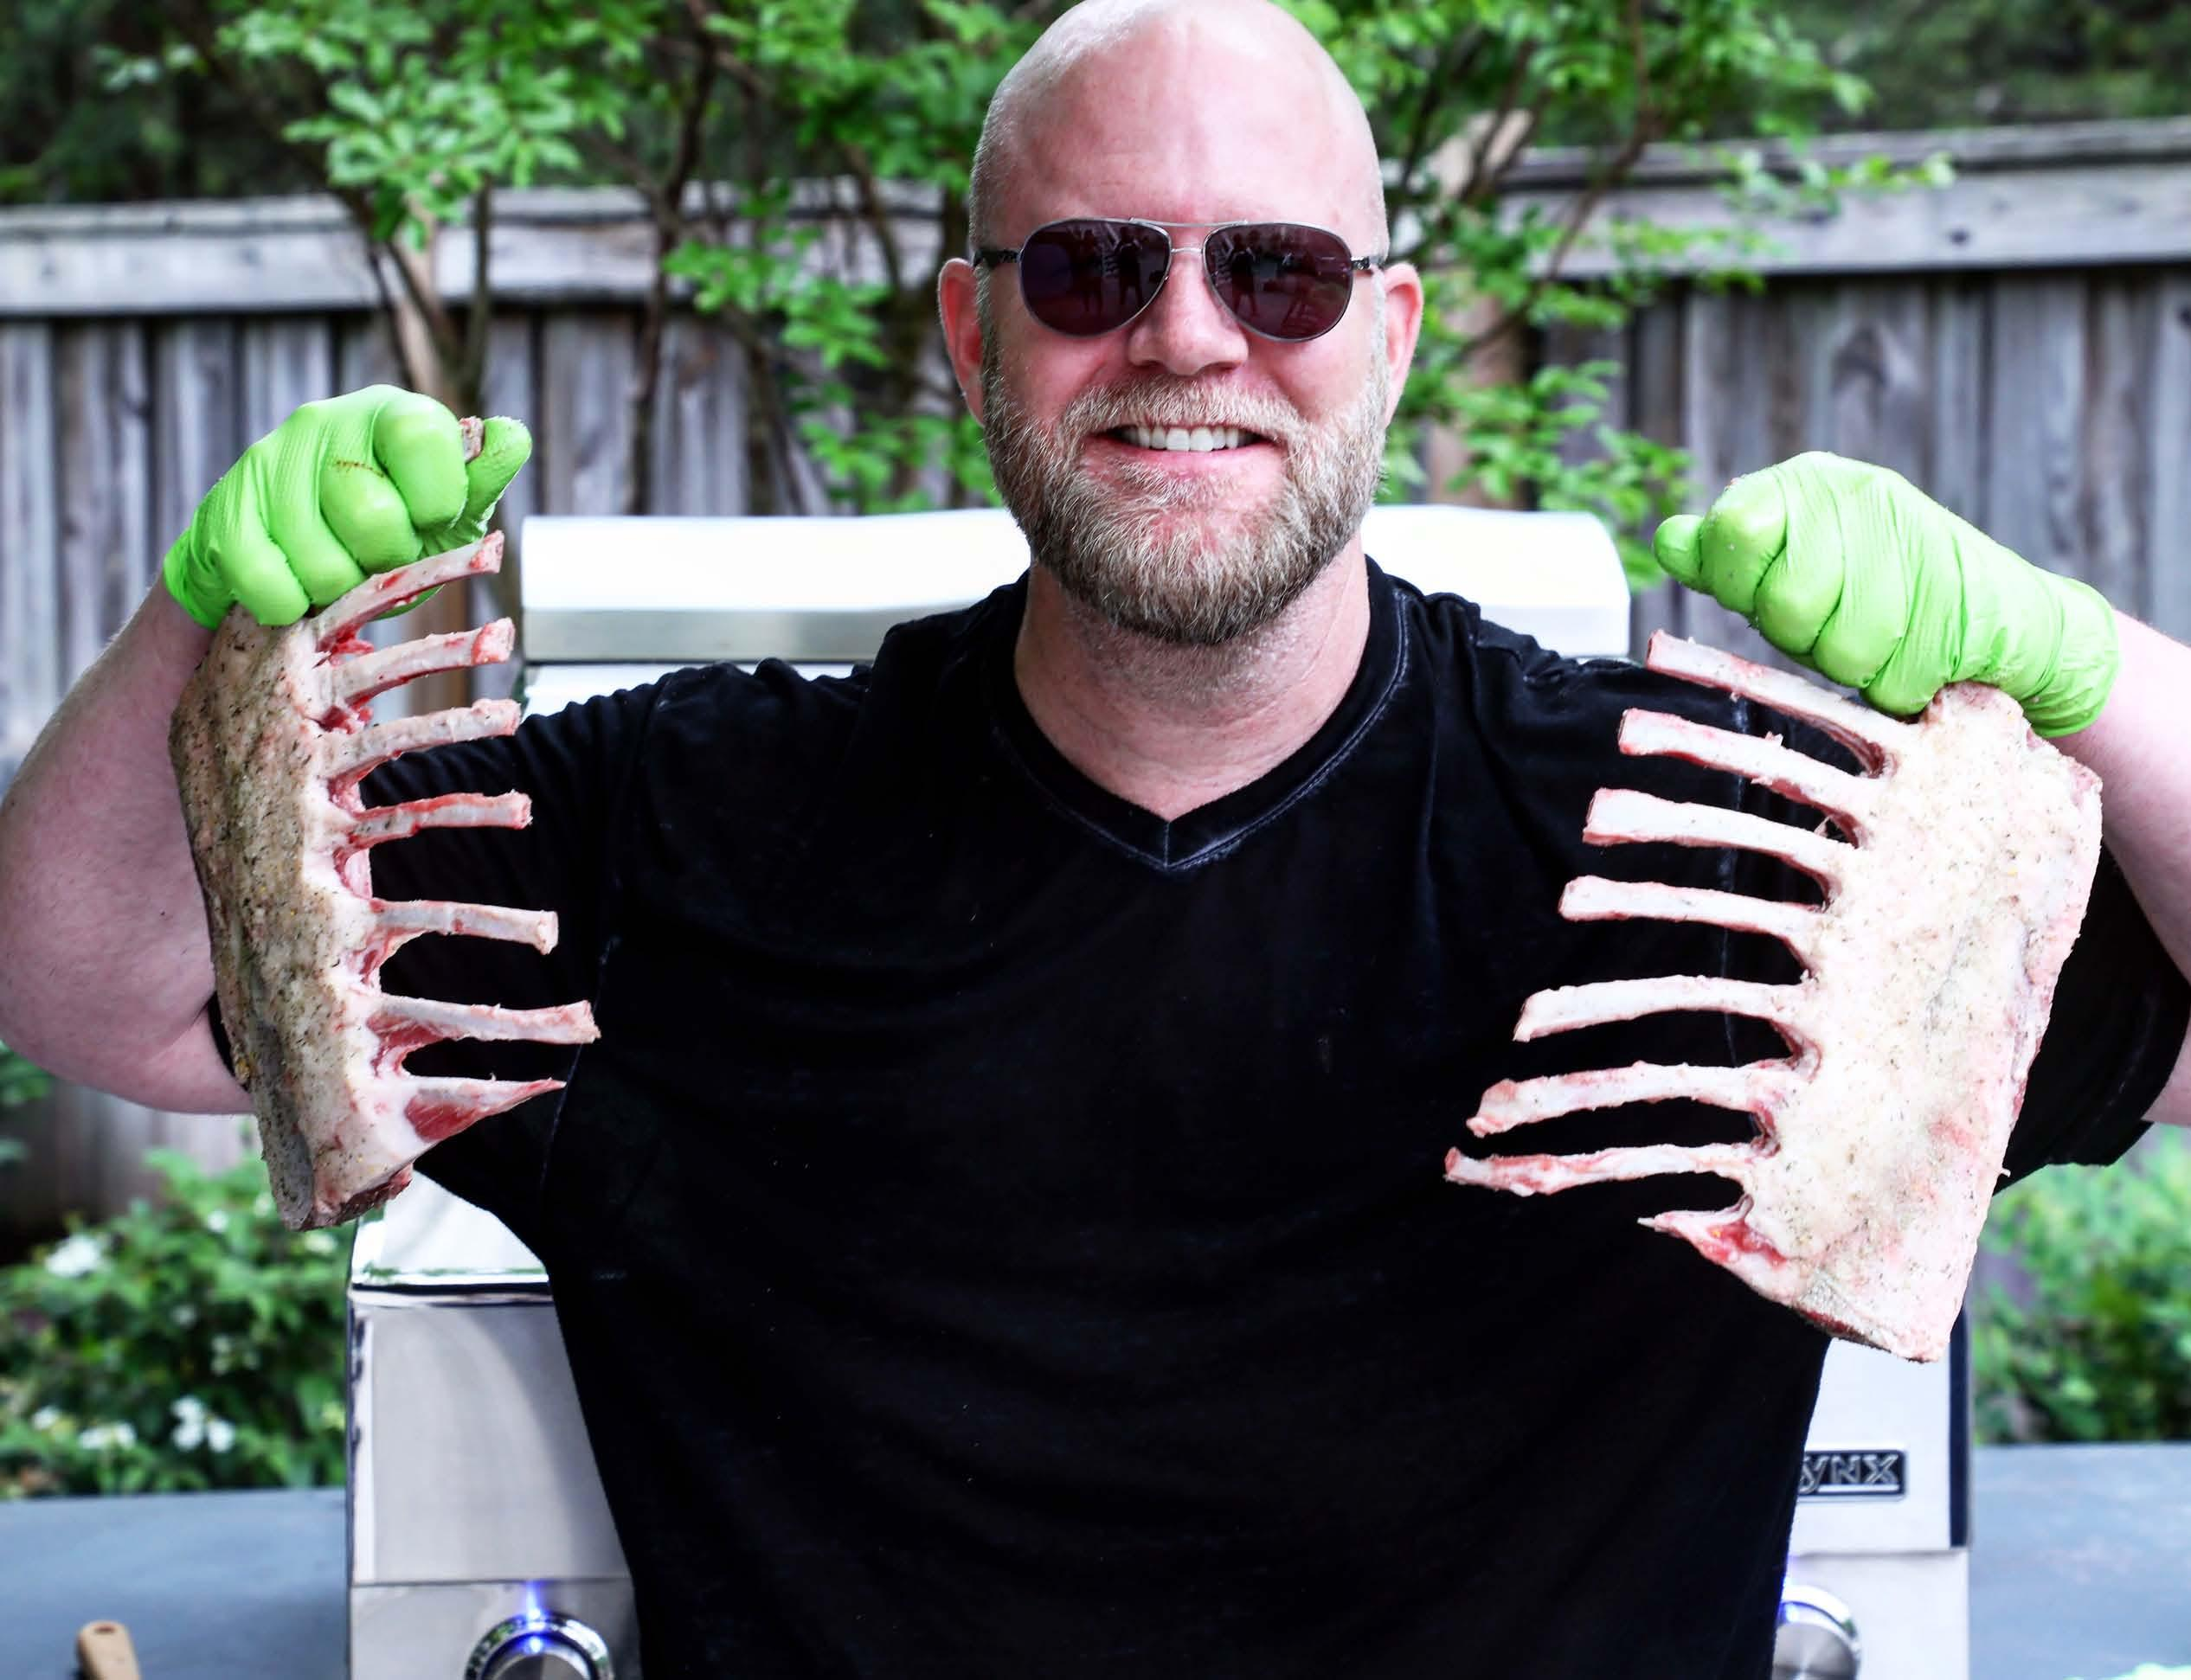 Page 10 of GOOD EADS: Former Marine turns grilling hobby into lifestyle